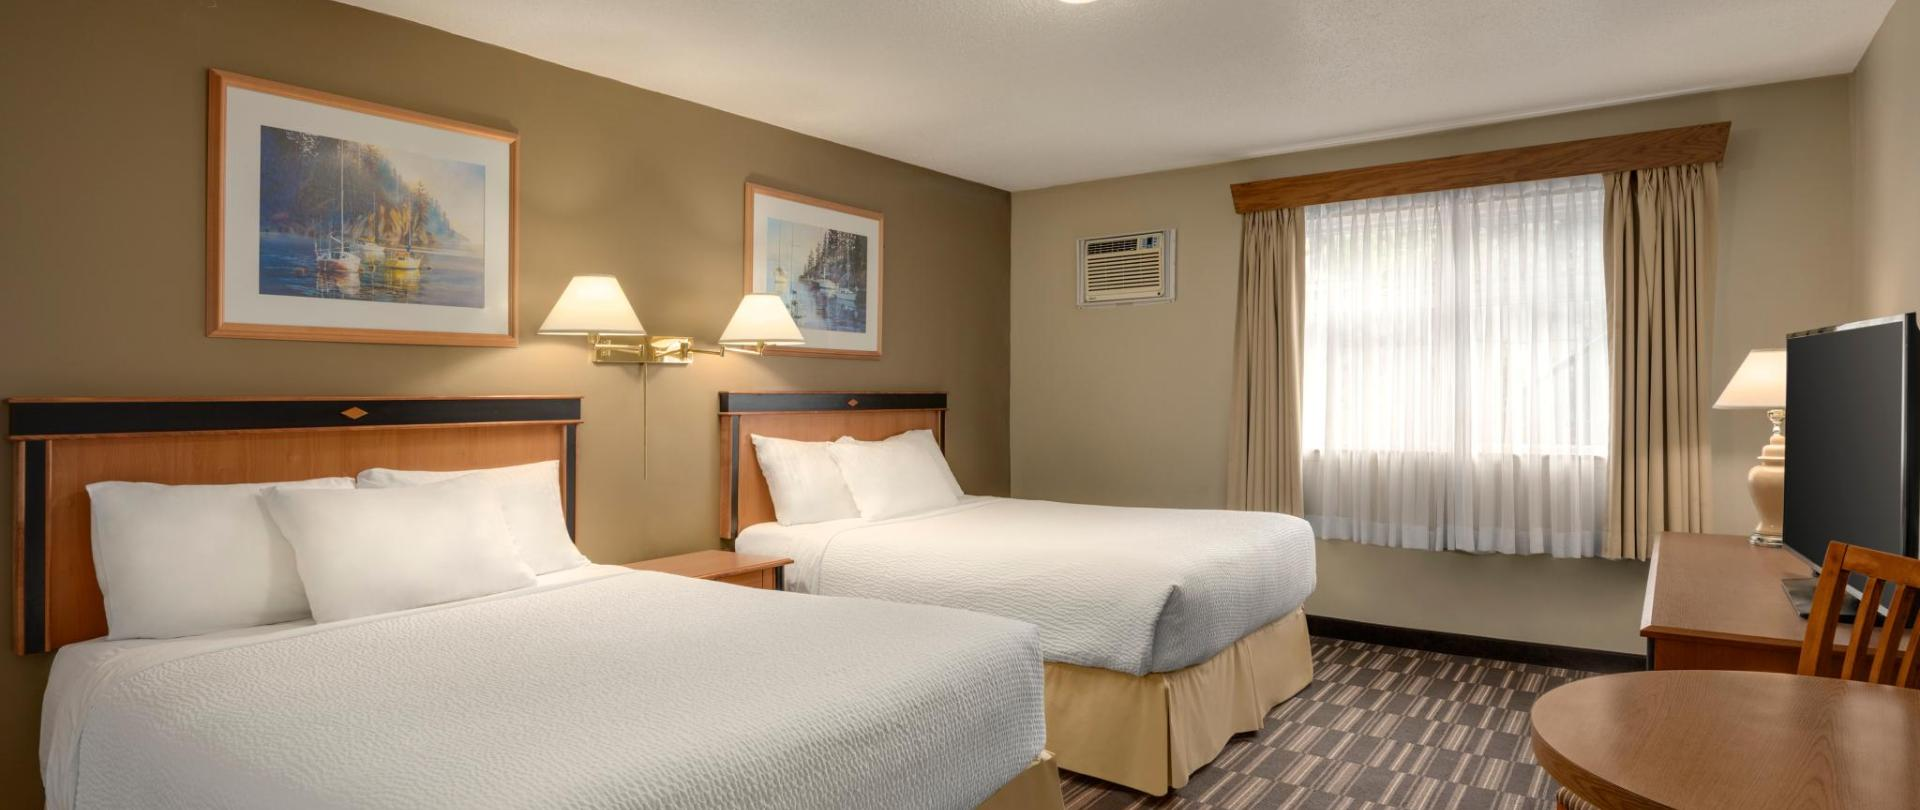 Days Inn Nanaimo - 3 Queen Beds Studio Suite - 1446679.jpg